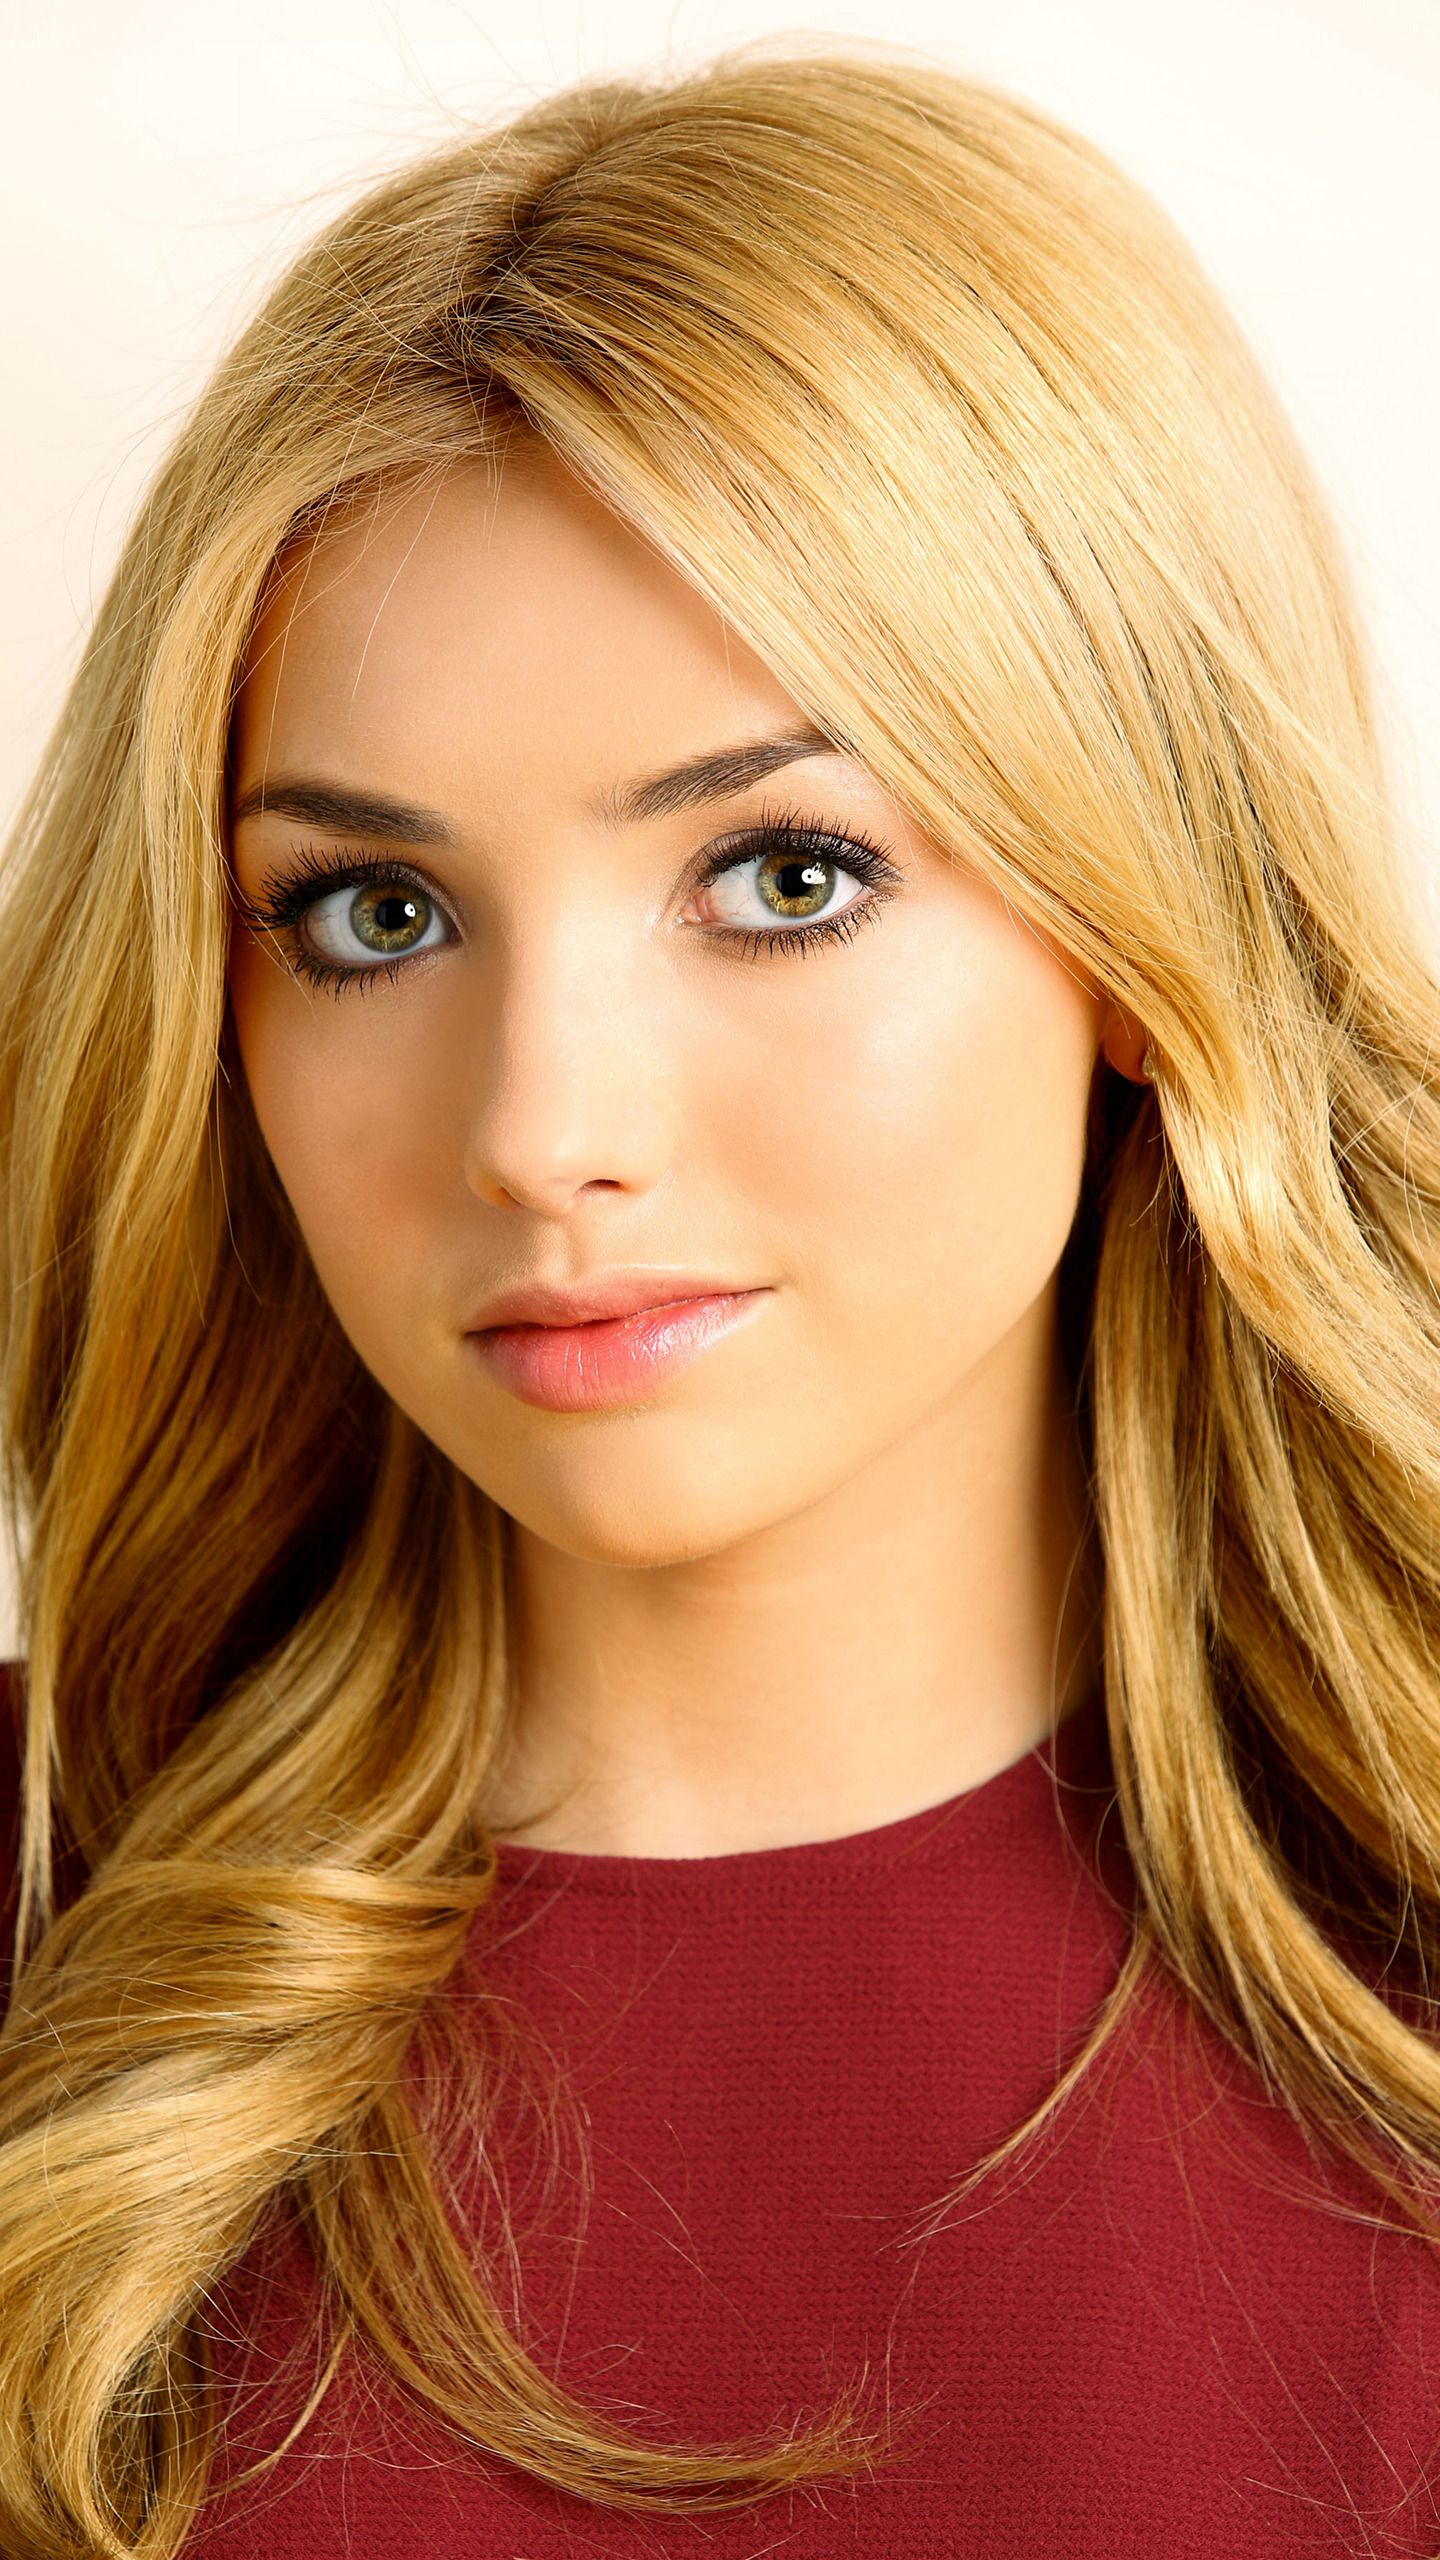 Peyton List Nude Pics and Videos - - Top Nude